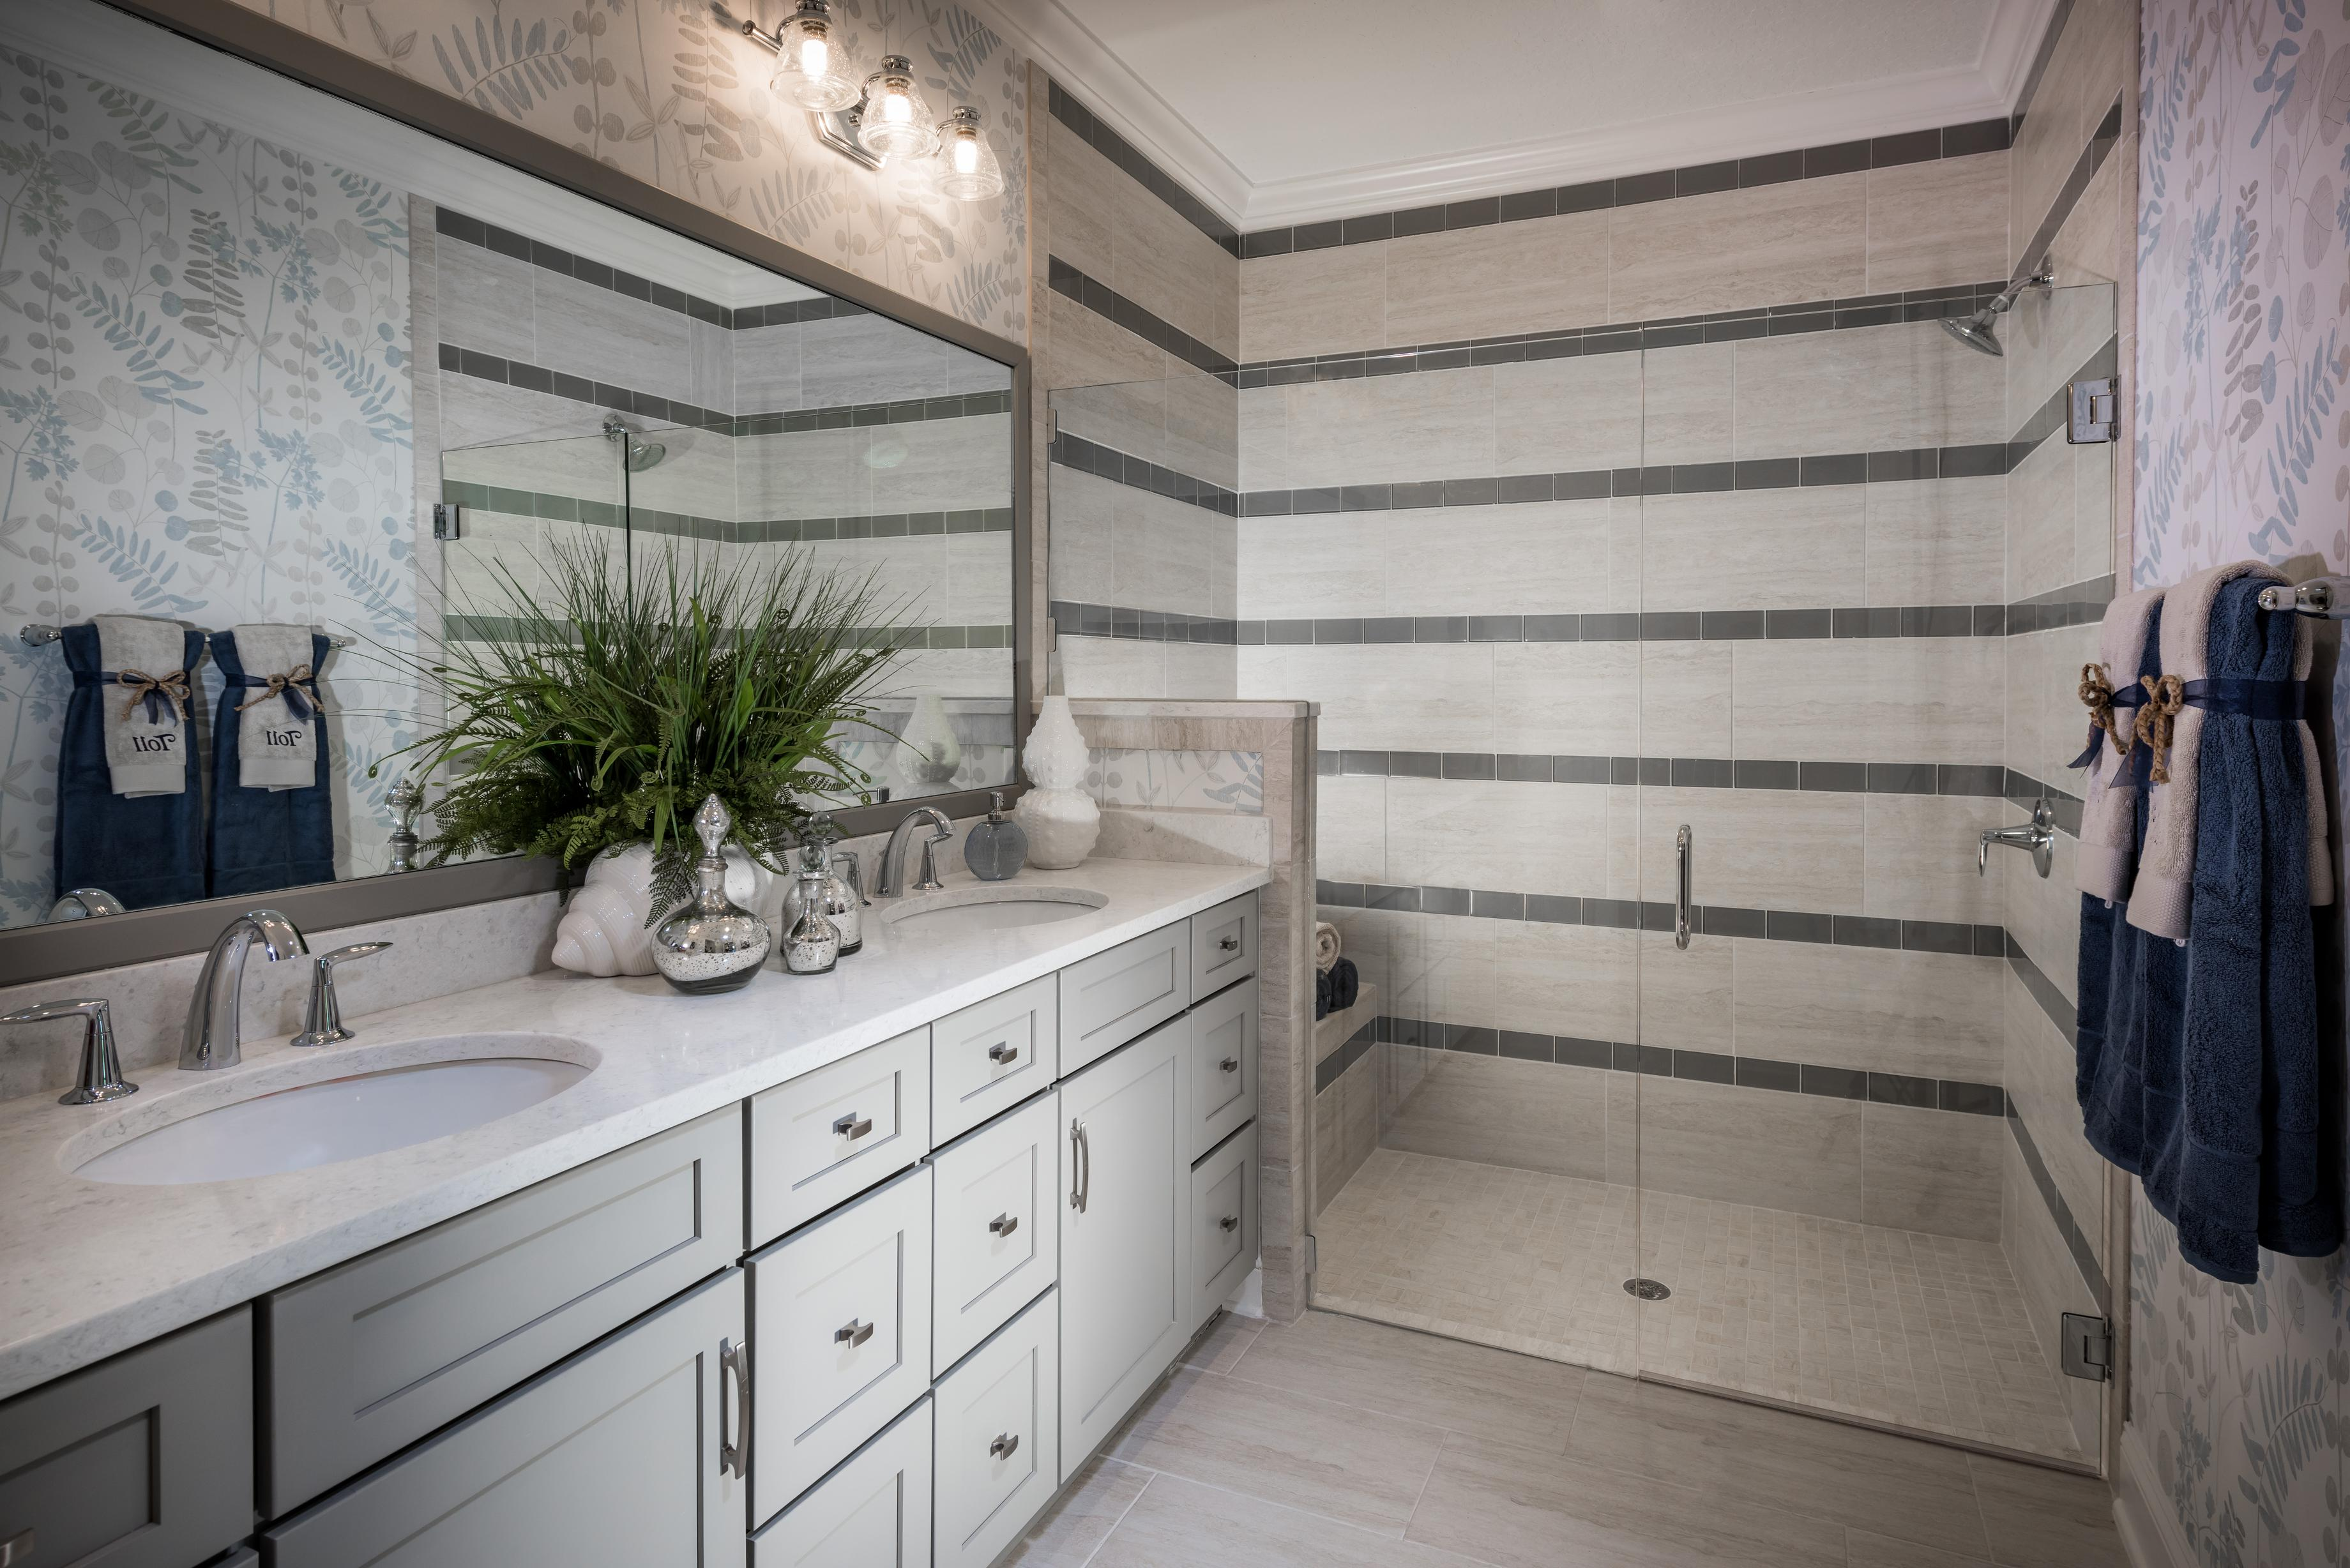 Vanity and walk-in shower with horizontal tiling